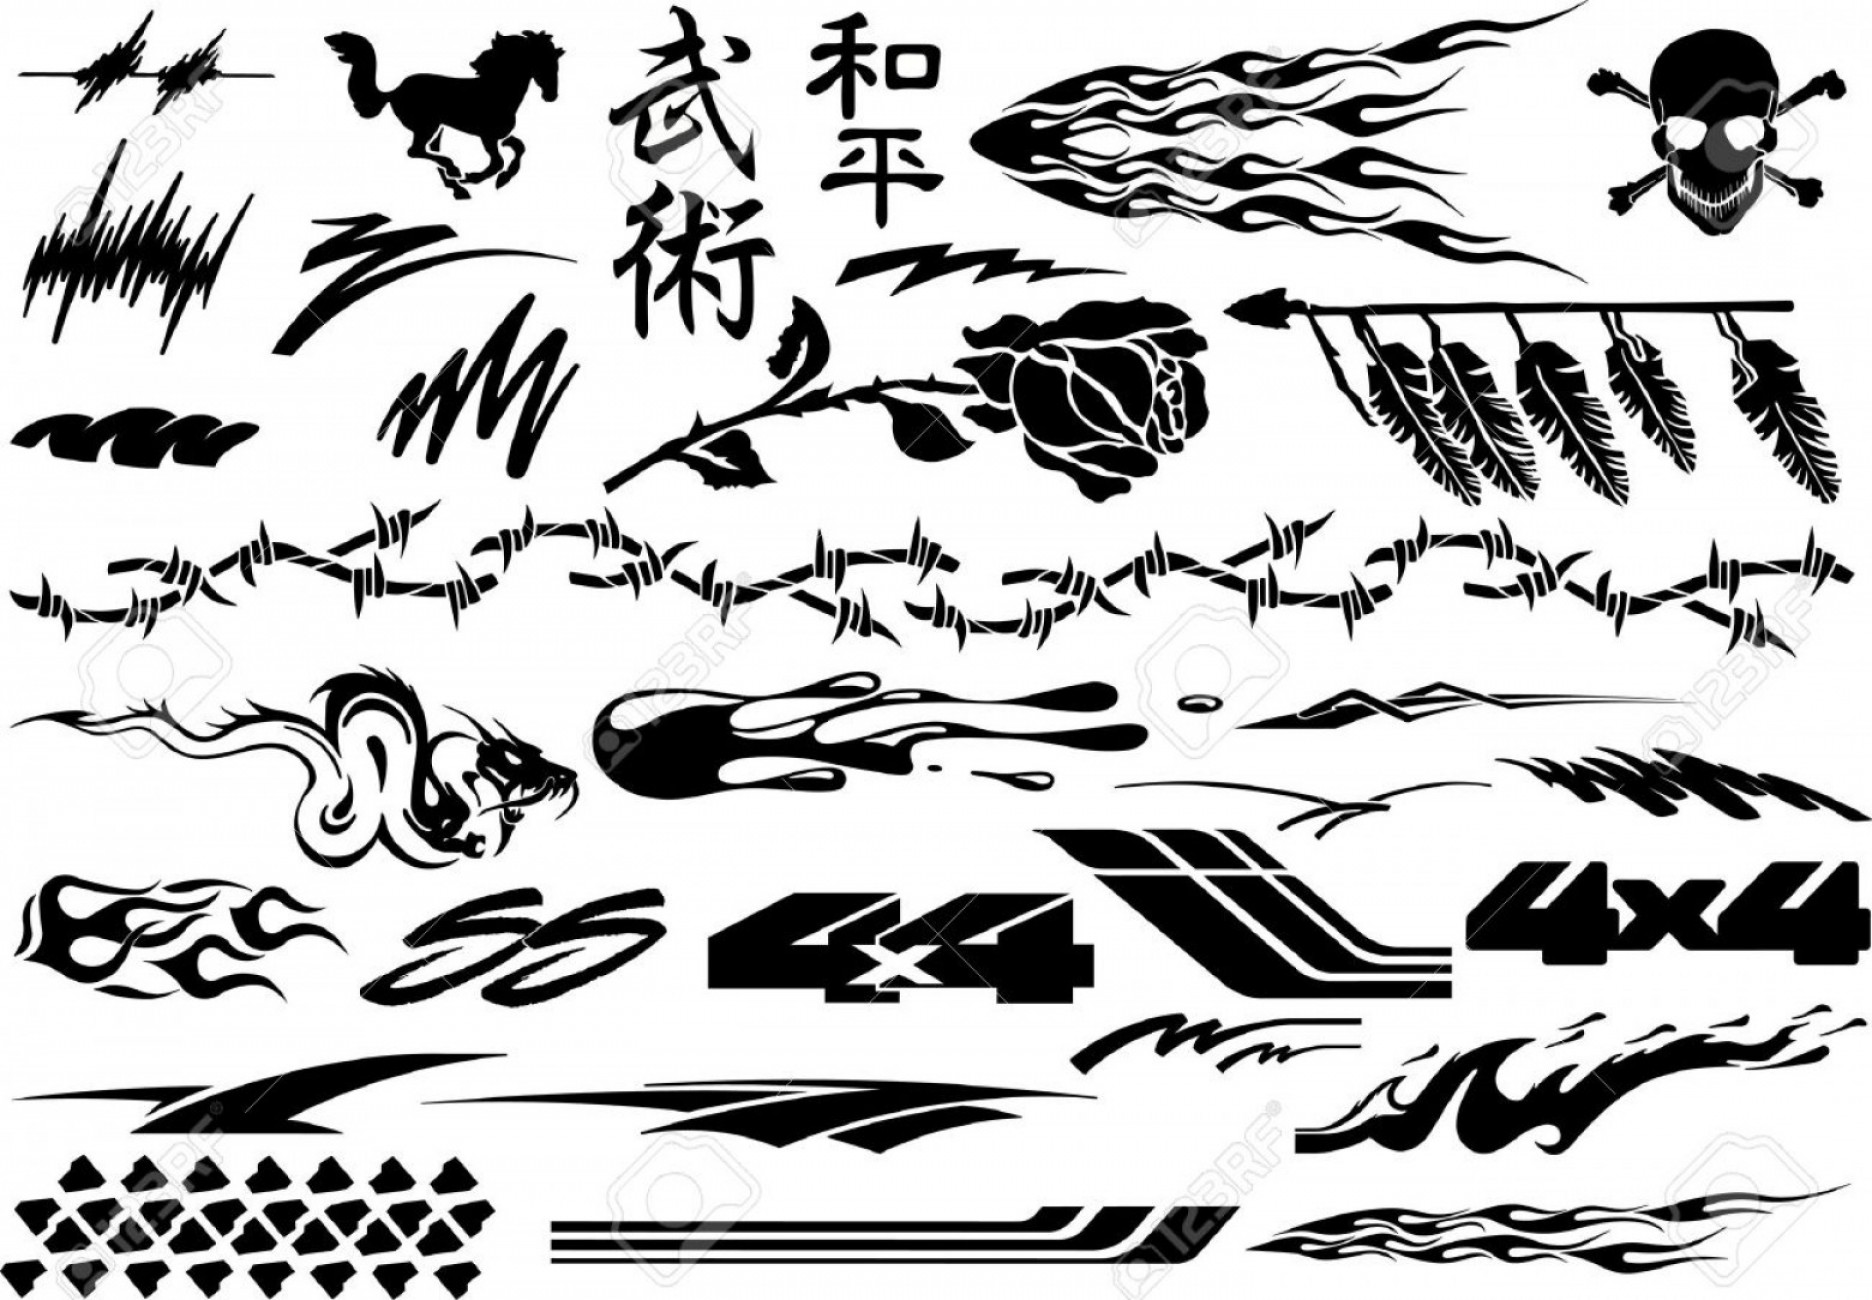 Black And White Vector Racing Graphics: Photostock Vector Car Motorcycle Racing Vehicle Graphics Vinyls Decals